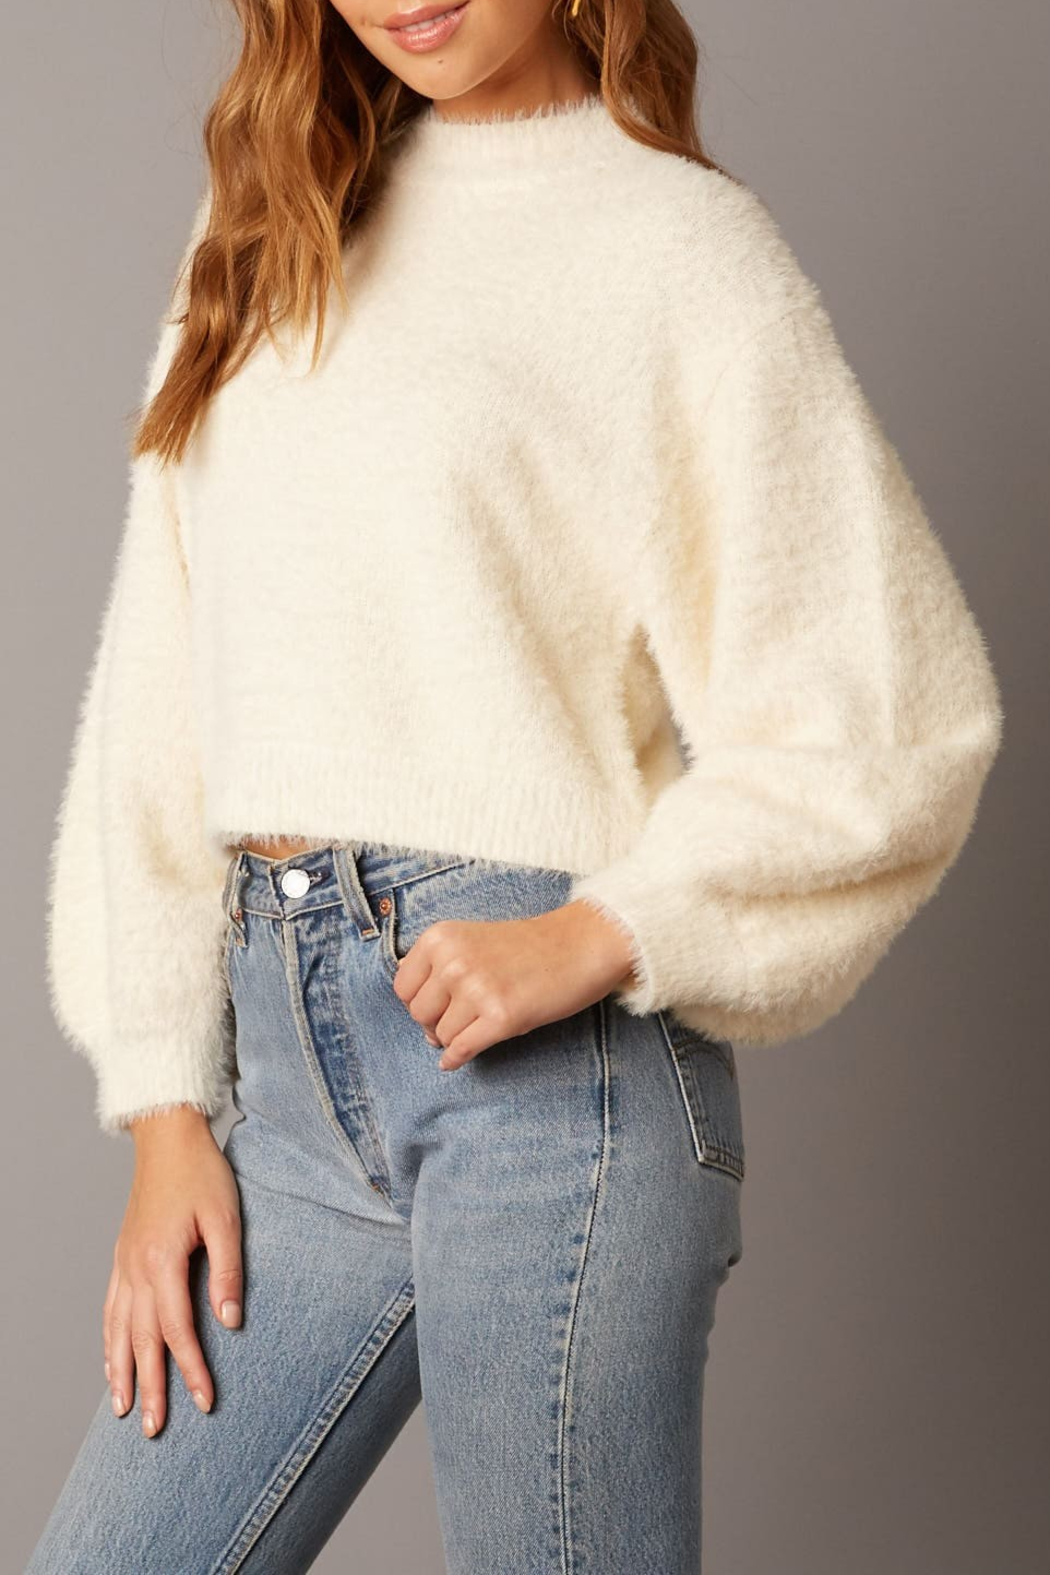 Cotton Candy LA Fuzzy Sweater Ivory - Front Full Image